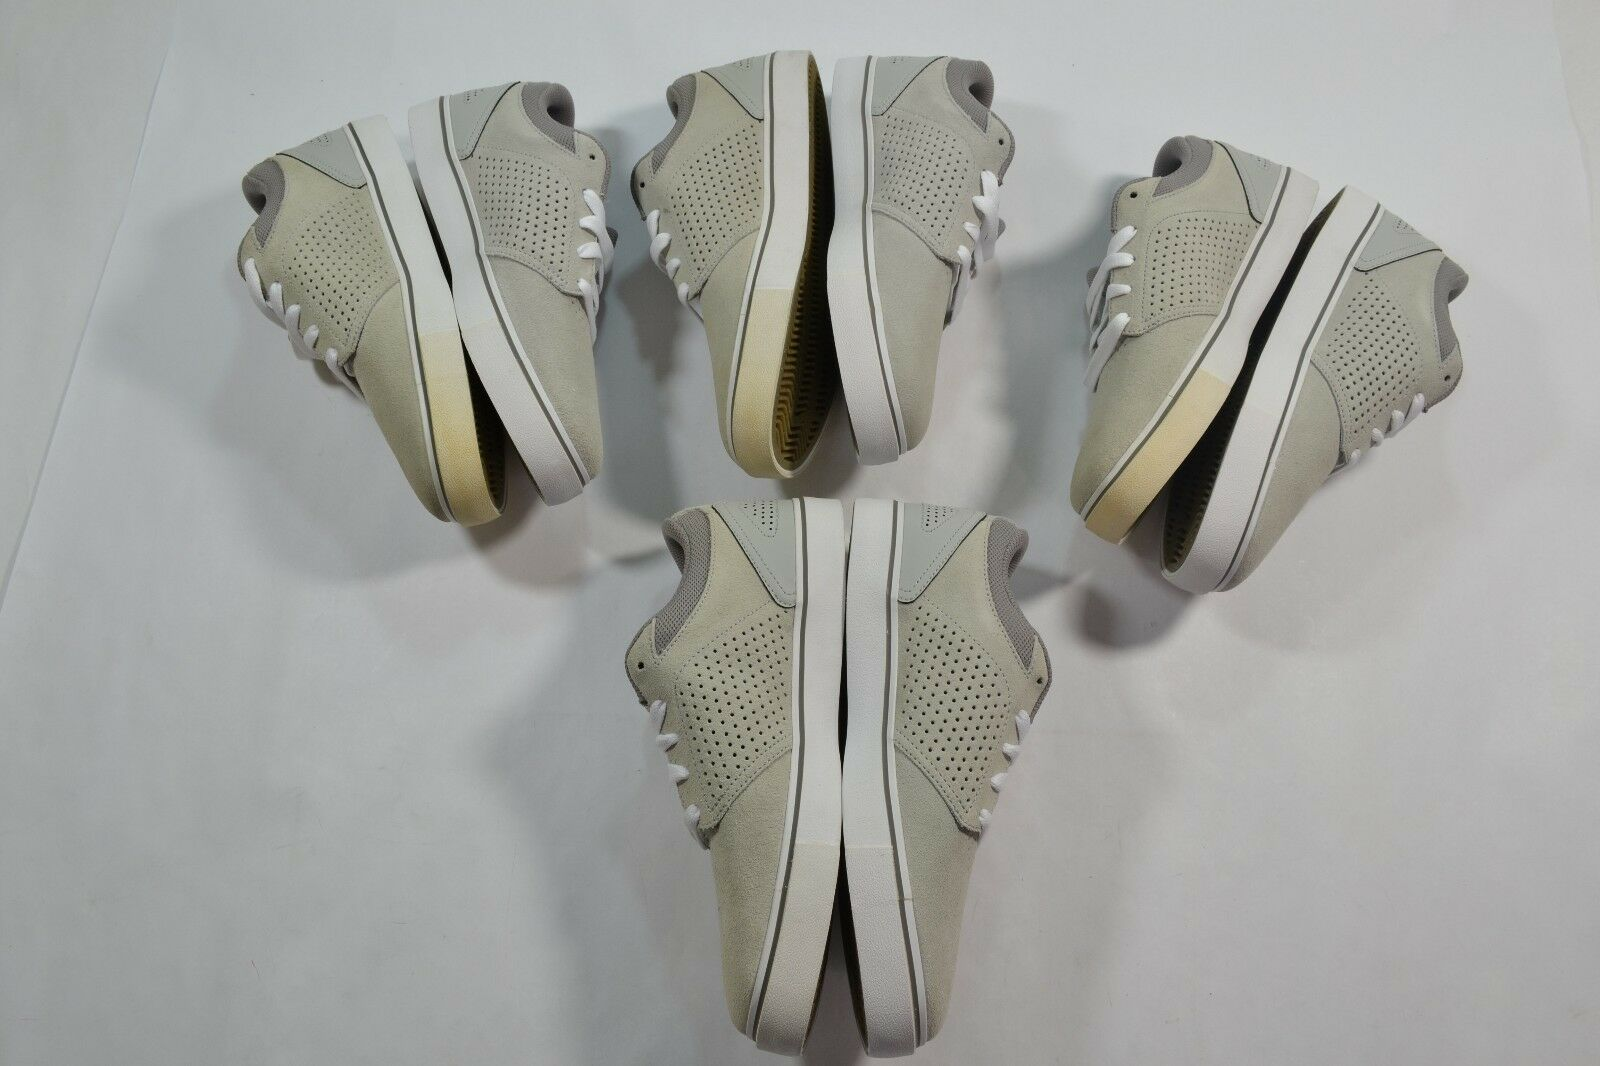 Nike PAUL RODRIGUEZ 5 LR Strata White Grey Sport White Strata Discounted (213) Men's Shoes 20fdc0